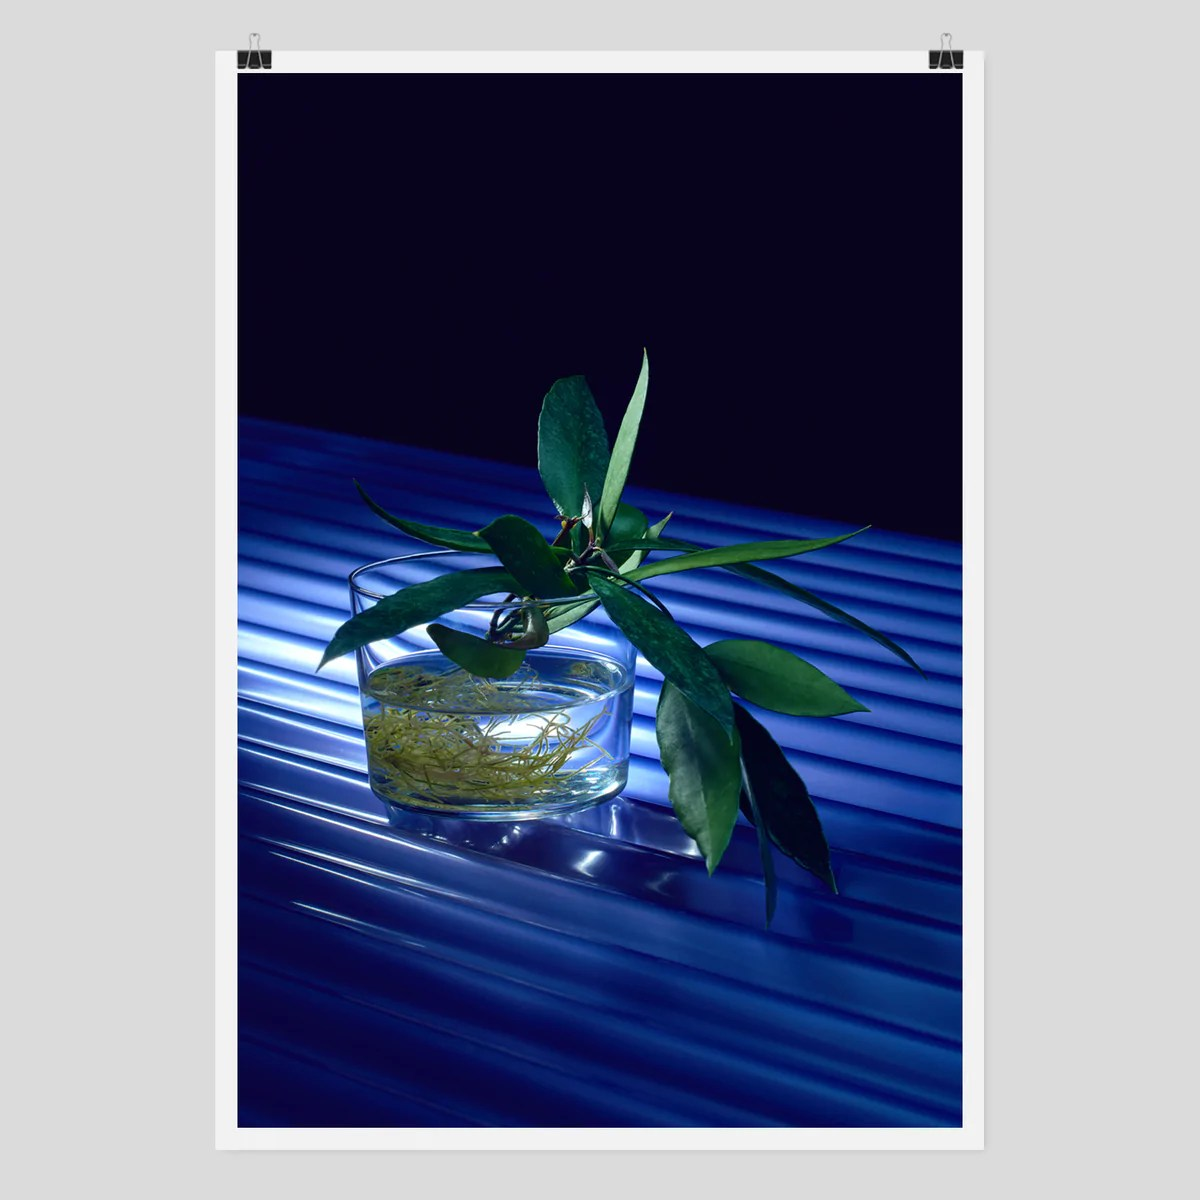 Poster Online Kaufen Cion 1, Limited Edition Framed Photography Print By Edition3000 – Edition3000